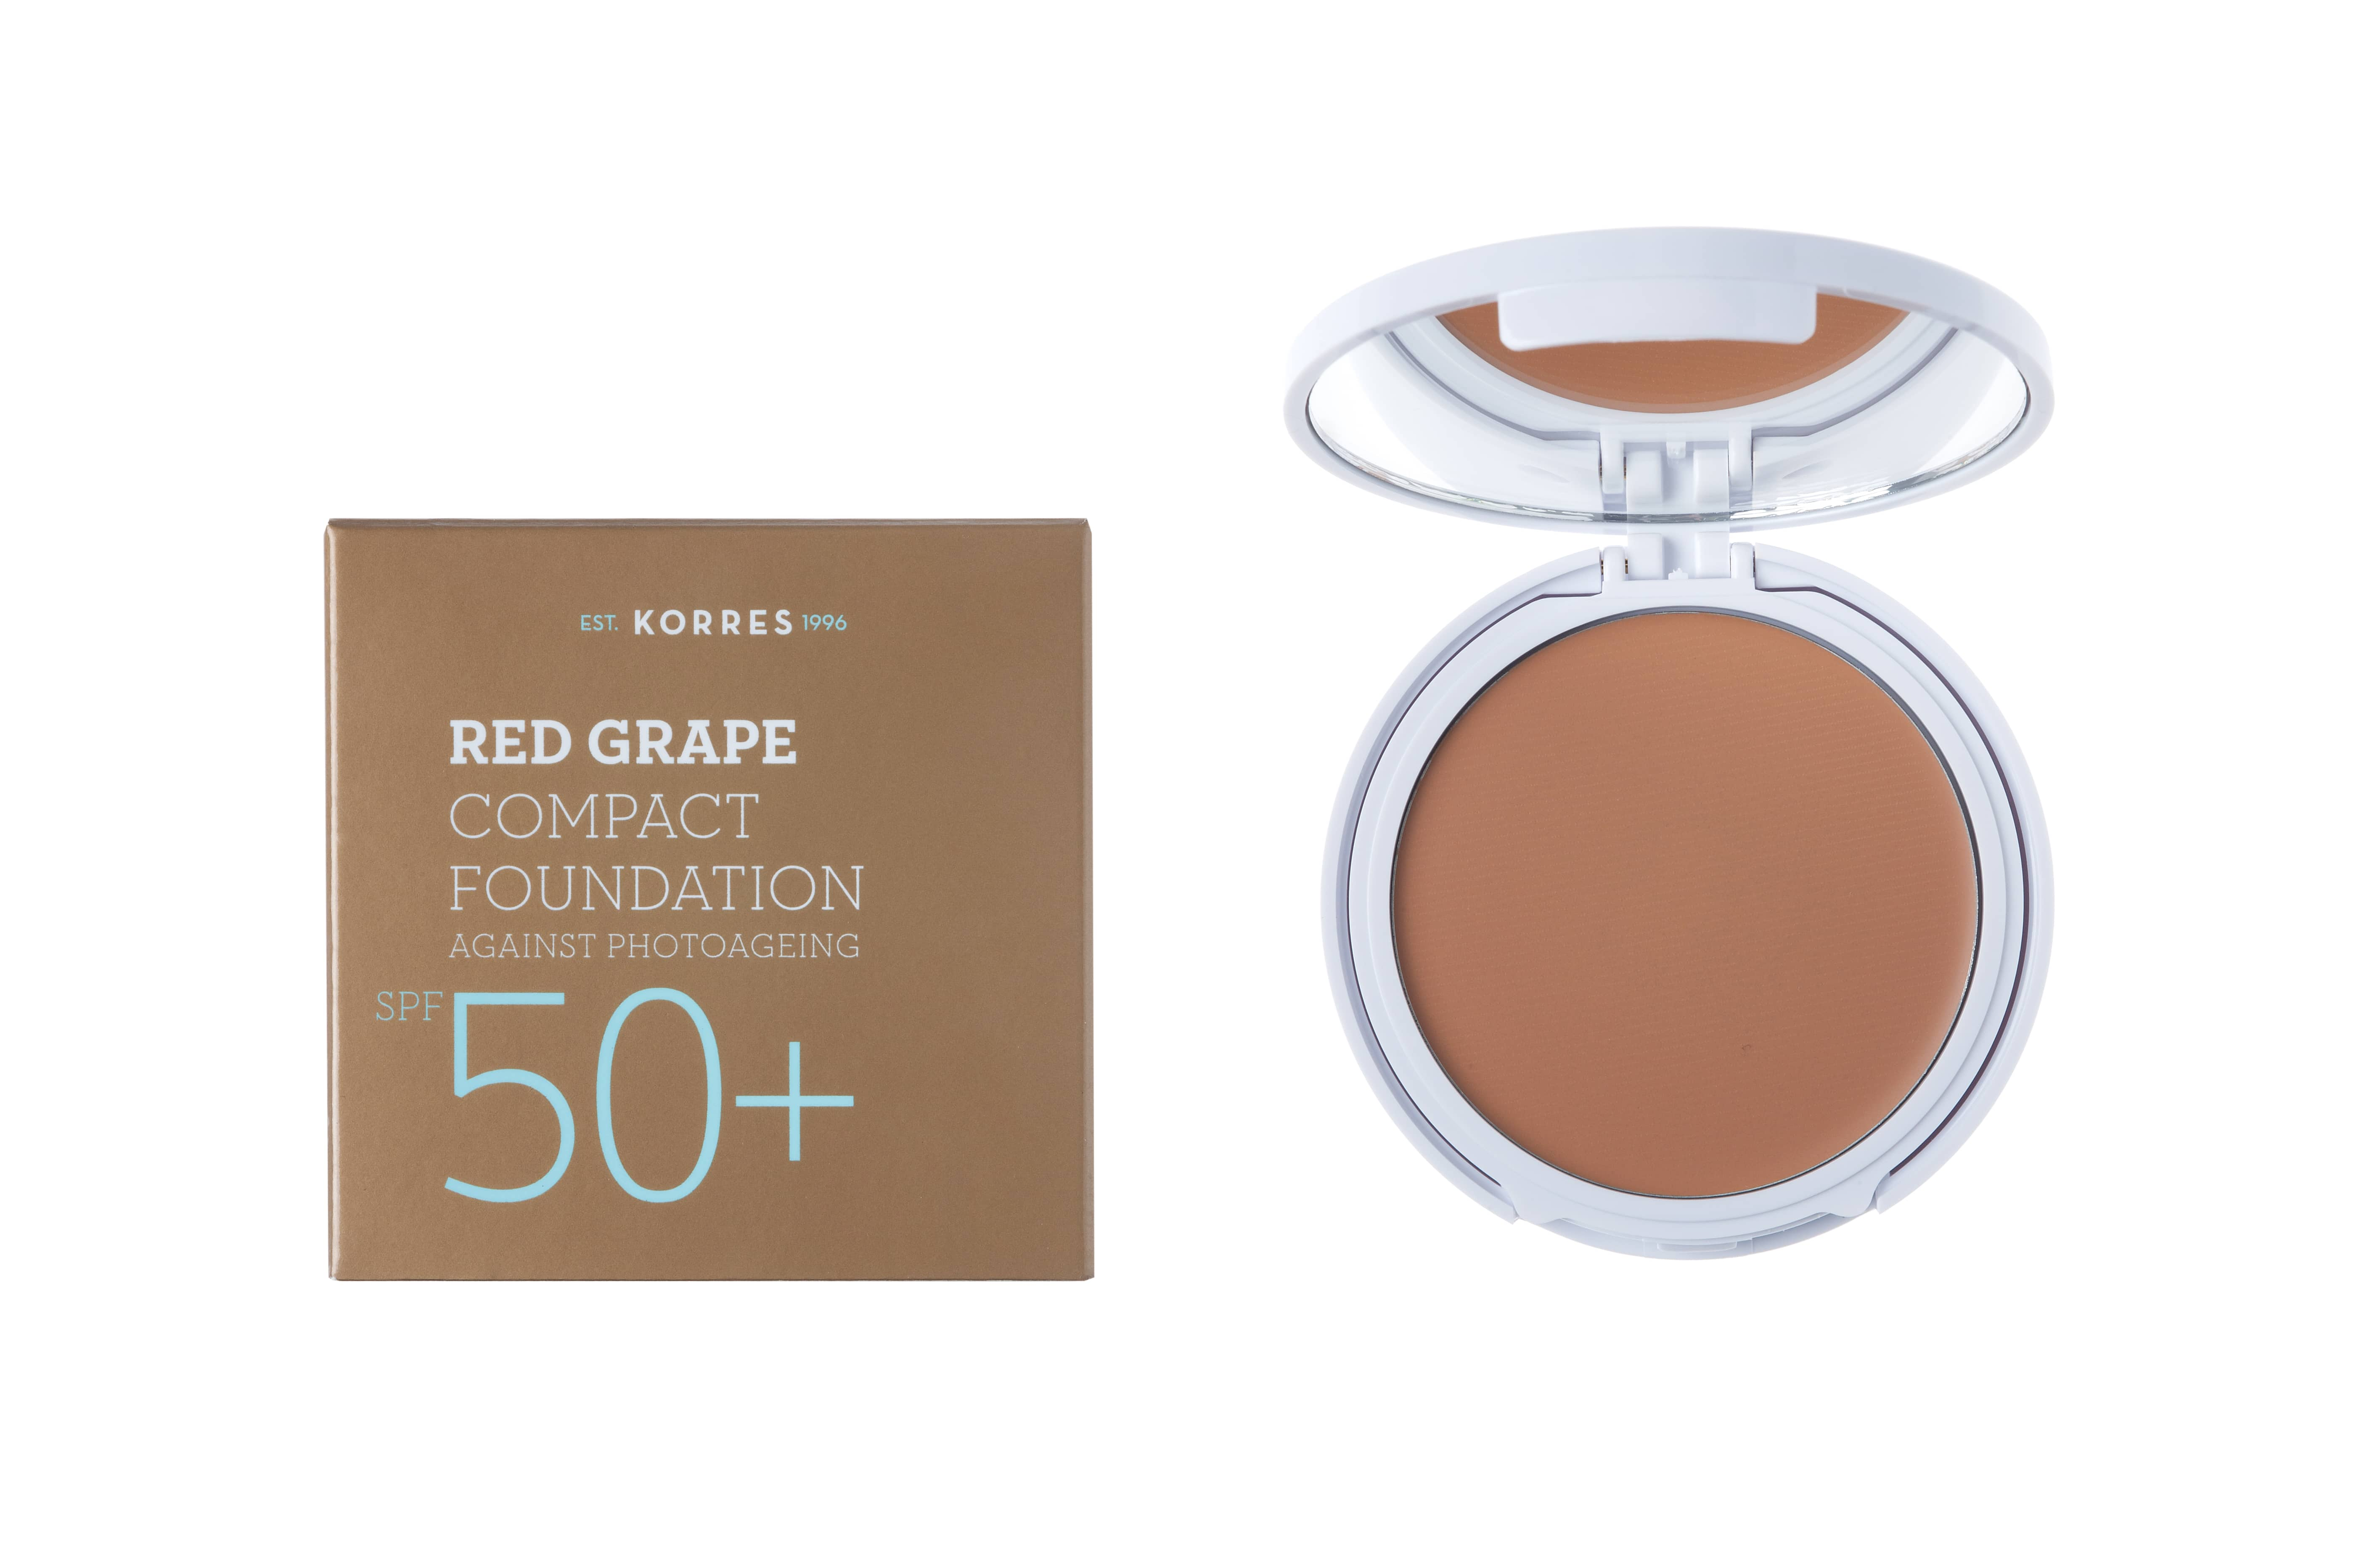 Korres Red Grape Compact Foundation SPF50+ Medium Αντηλιακό Make Up σε  μορφή compact με κόκκινο σταφύλι 96d42c8b1d0